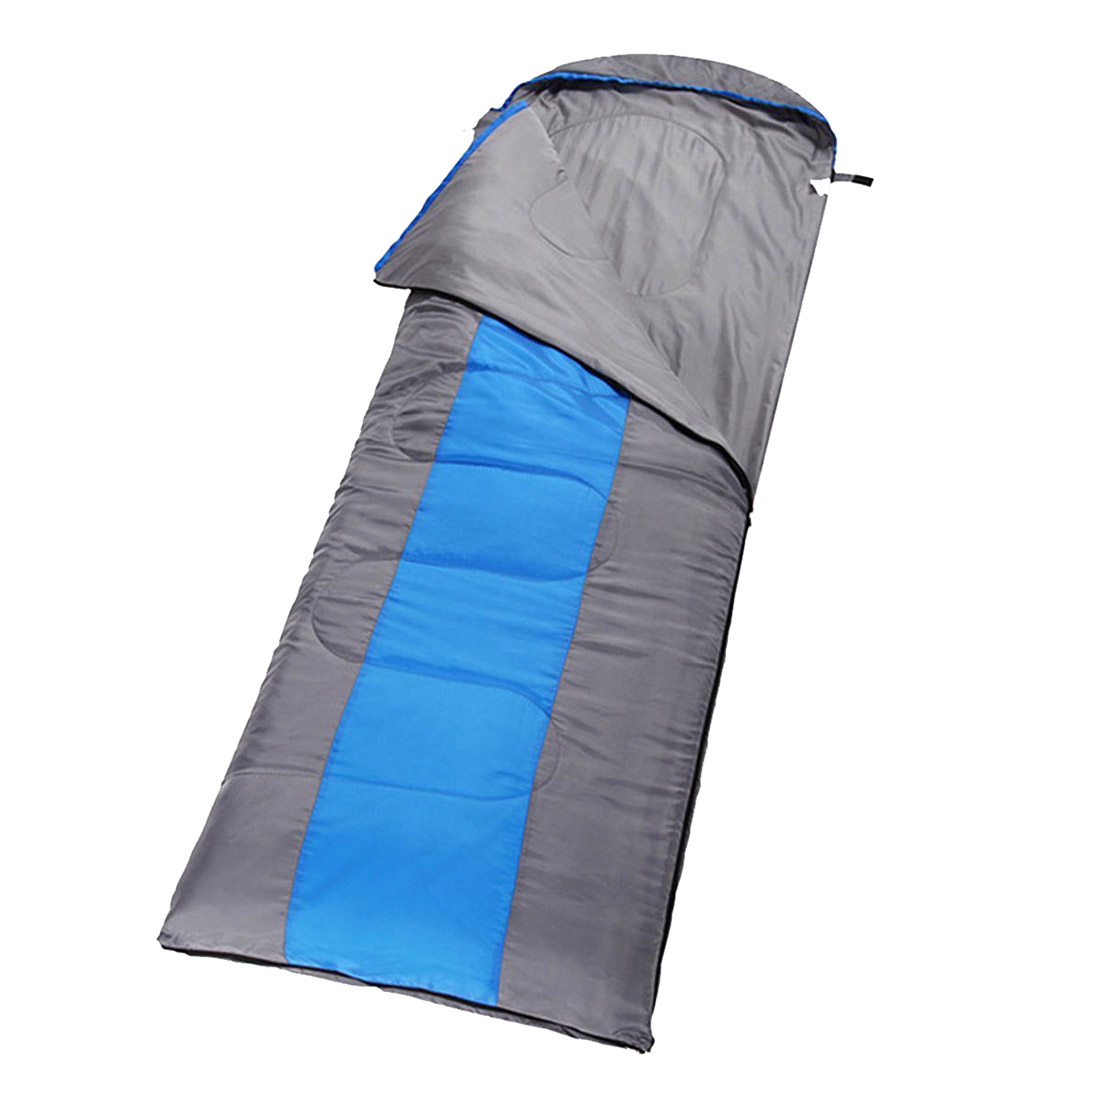 New Sale AOTU Outdoor Portable Ultralight Sleeping Sports Sports Trekking Thickener <font><b>on</b></font> Warm Adult Travel <font><b>Bag</b></font> Waterproof Emerge